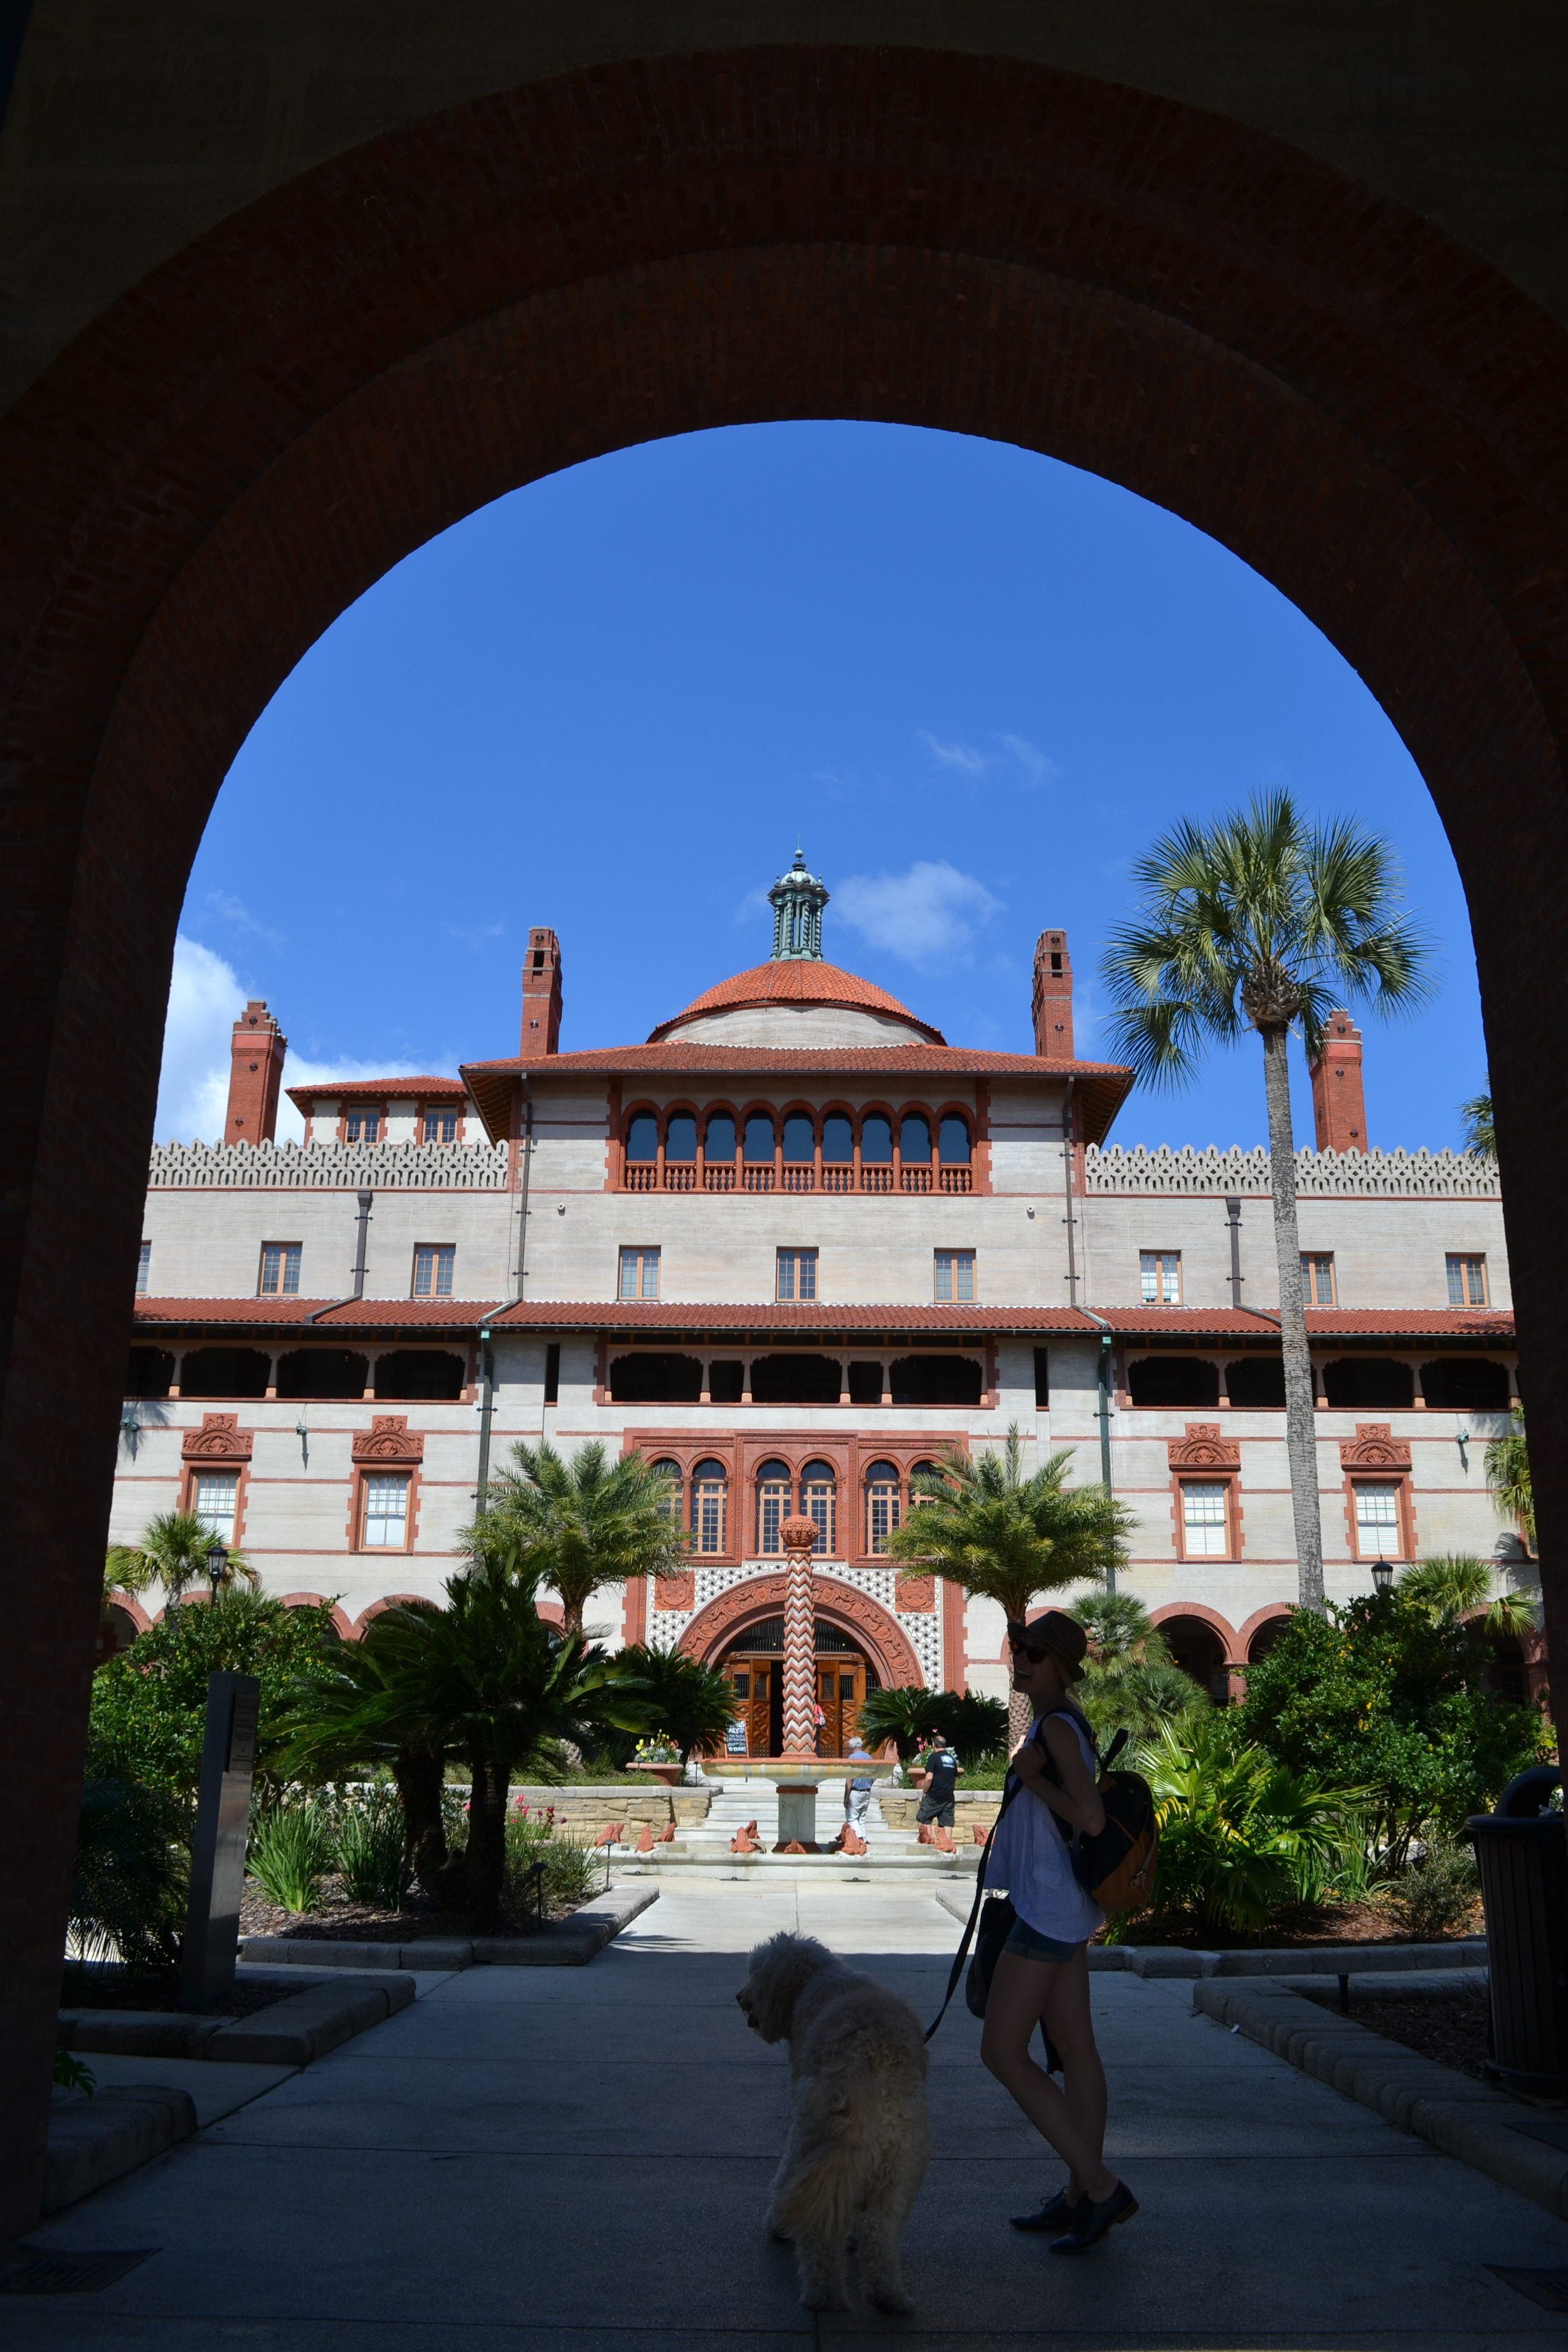 This is one of the main buildings on Flagler's campus. Crazy, right?!